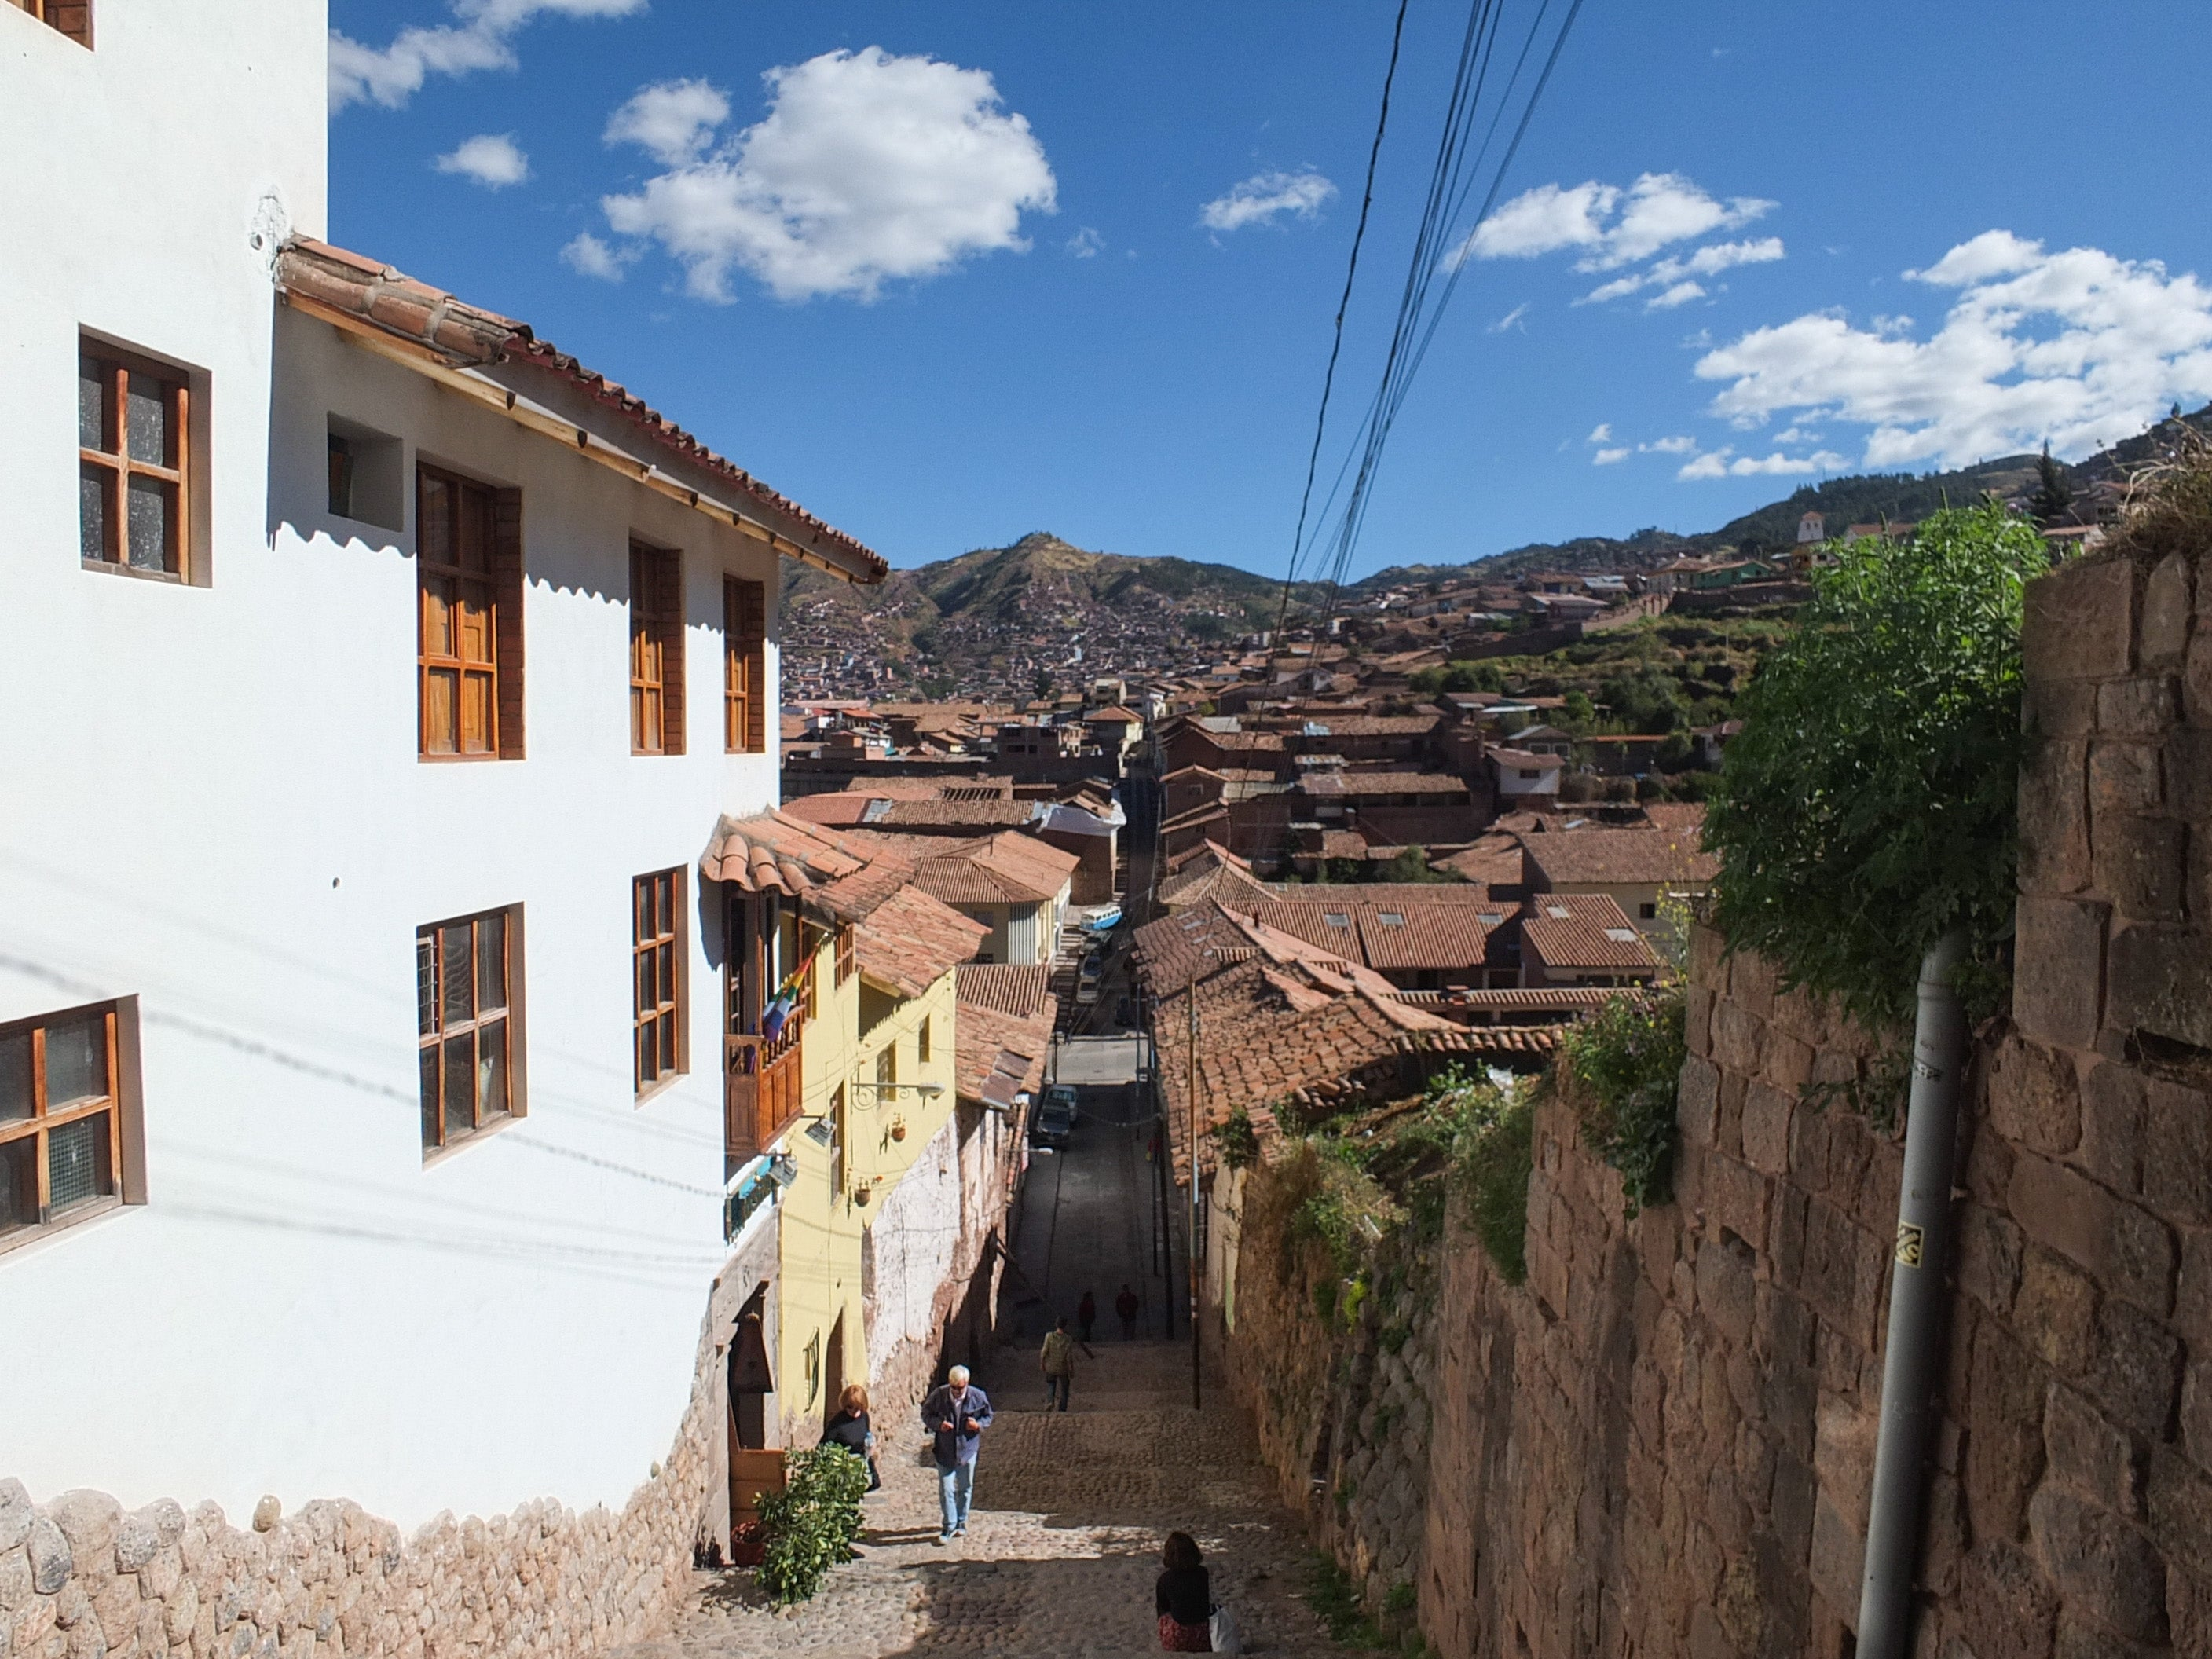 People in Cuzco